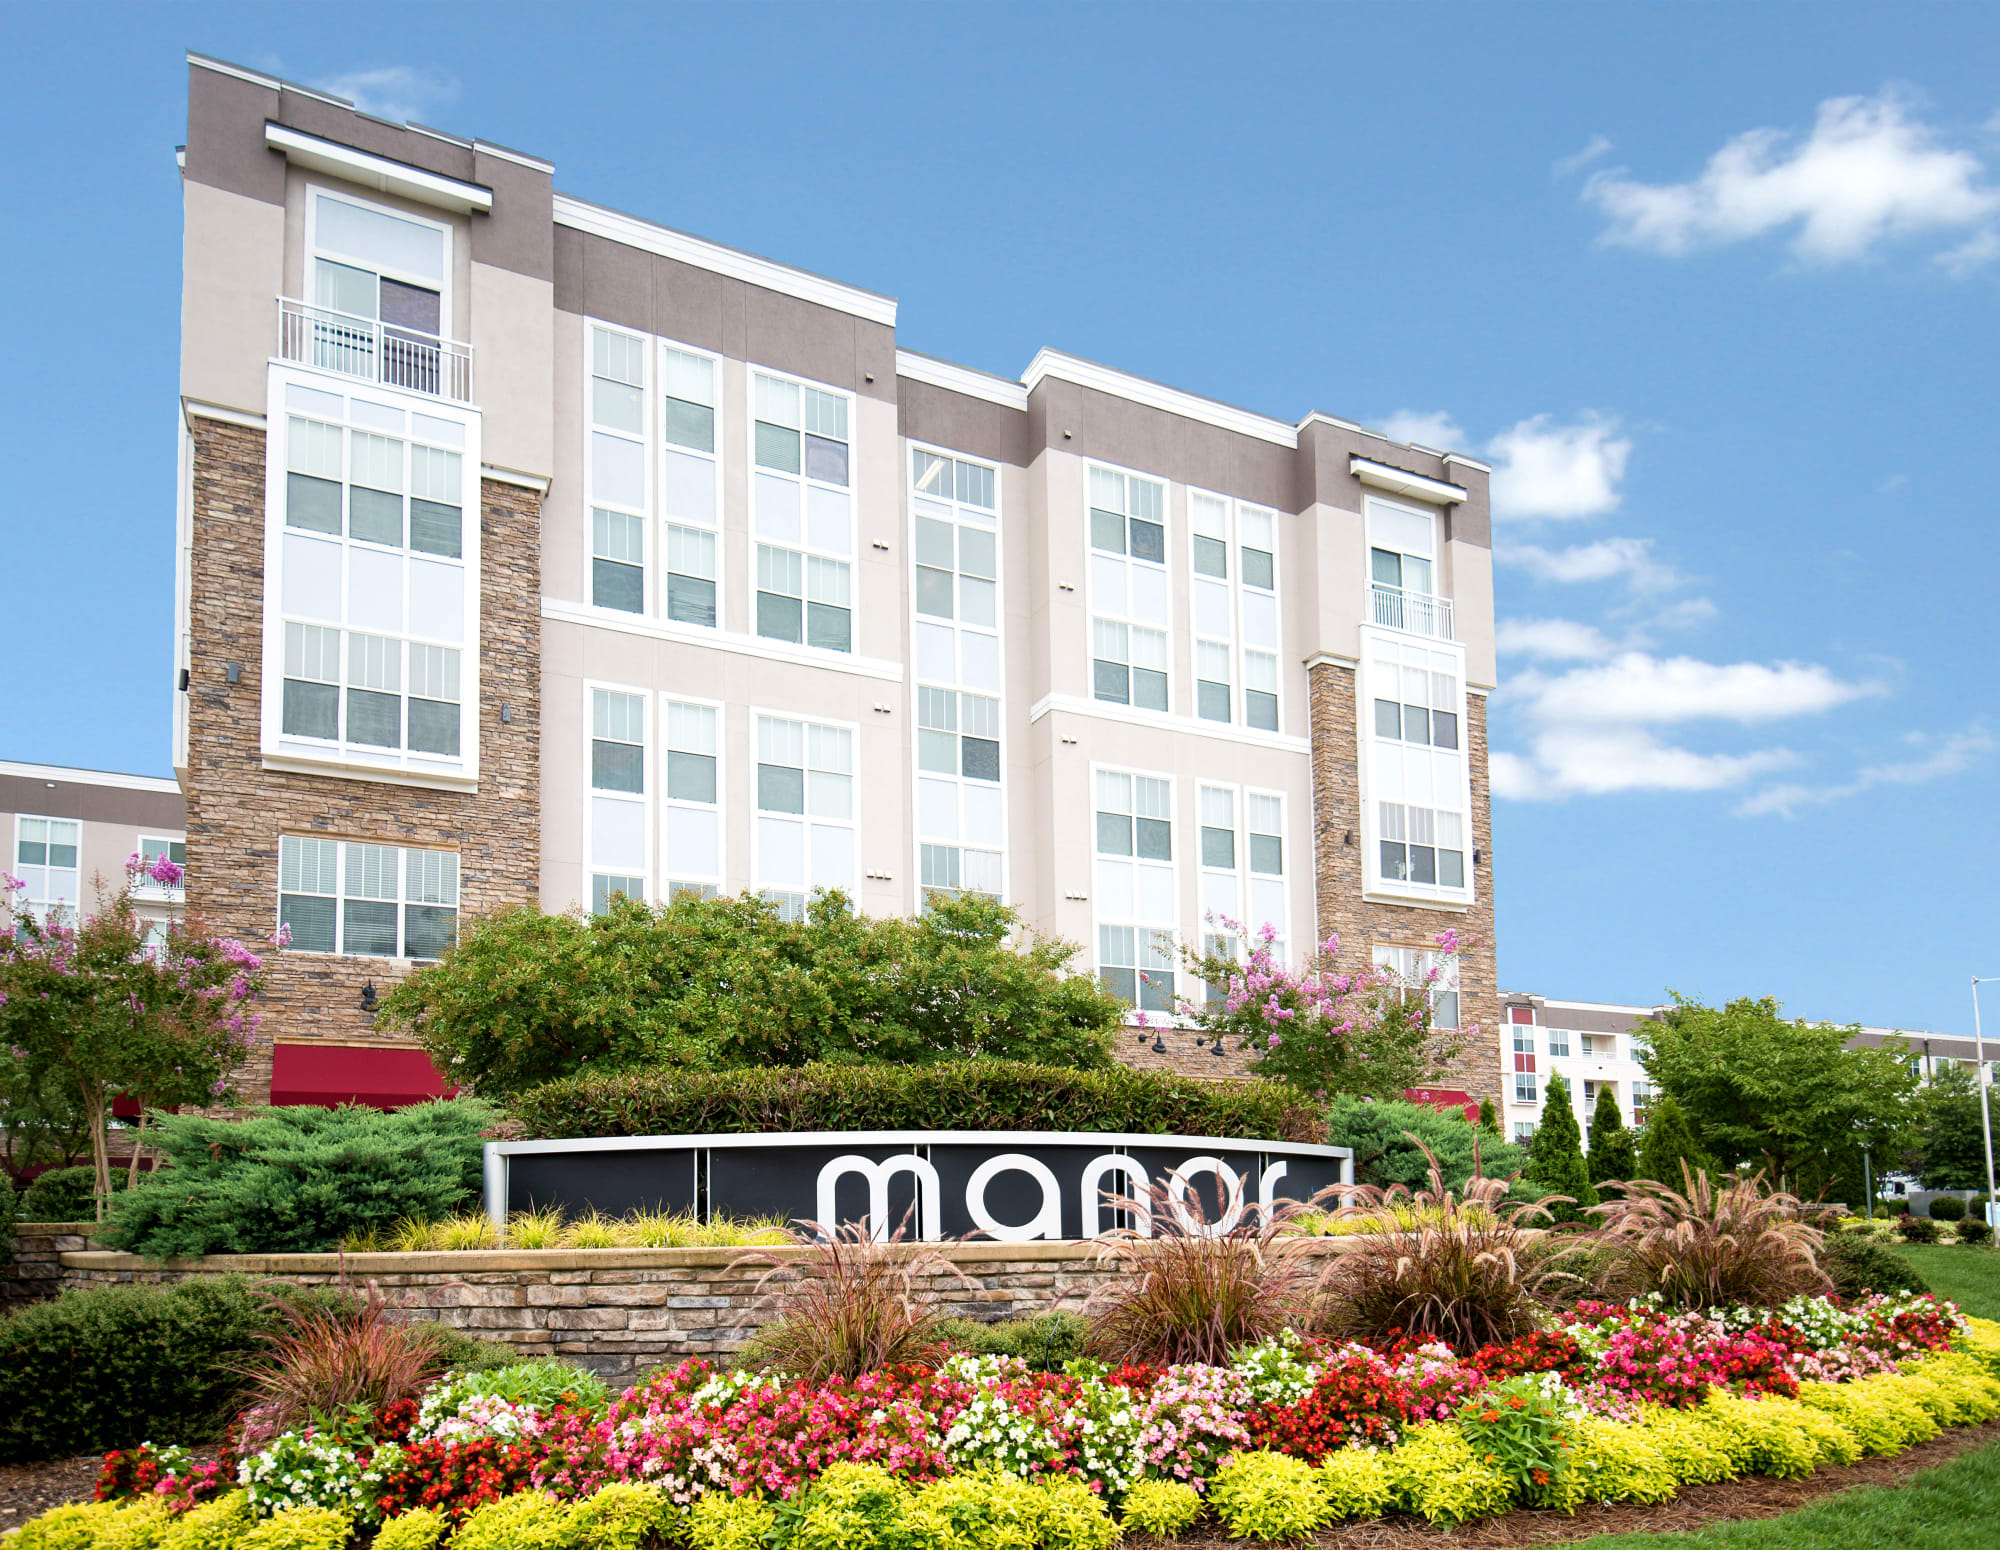 Apartments at Manor Six Forks in Raleigh, North Carolina